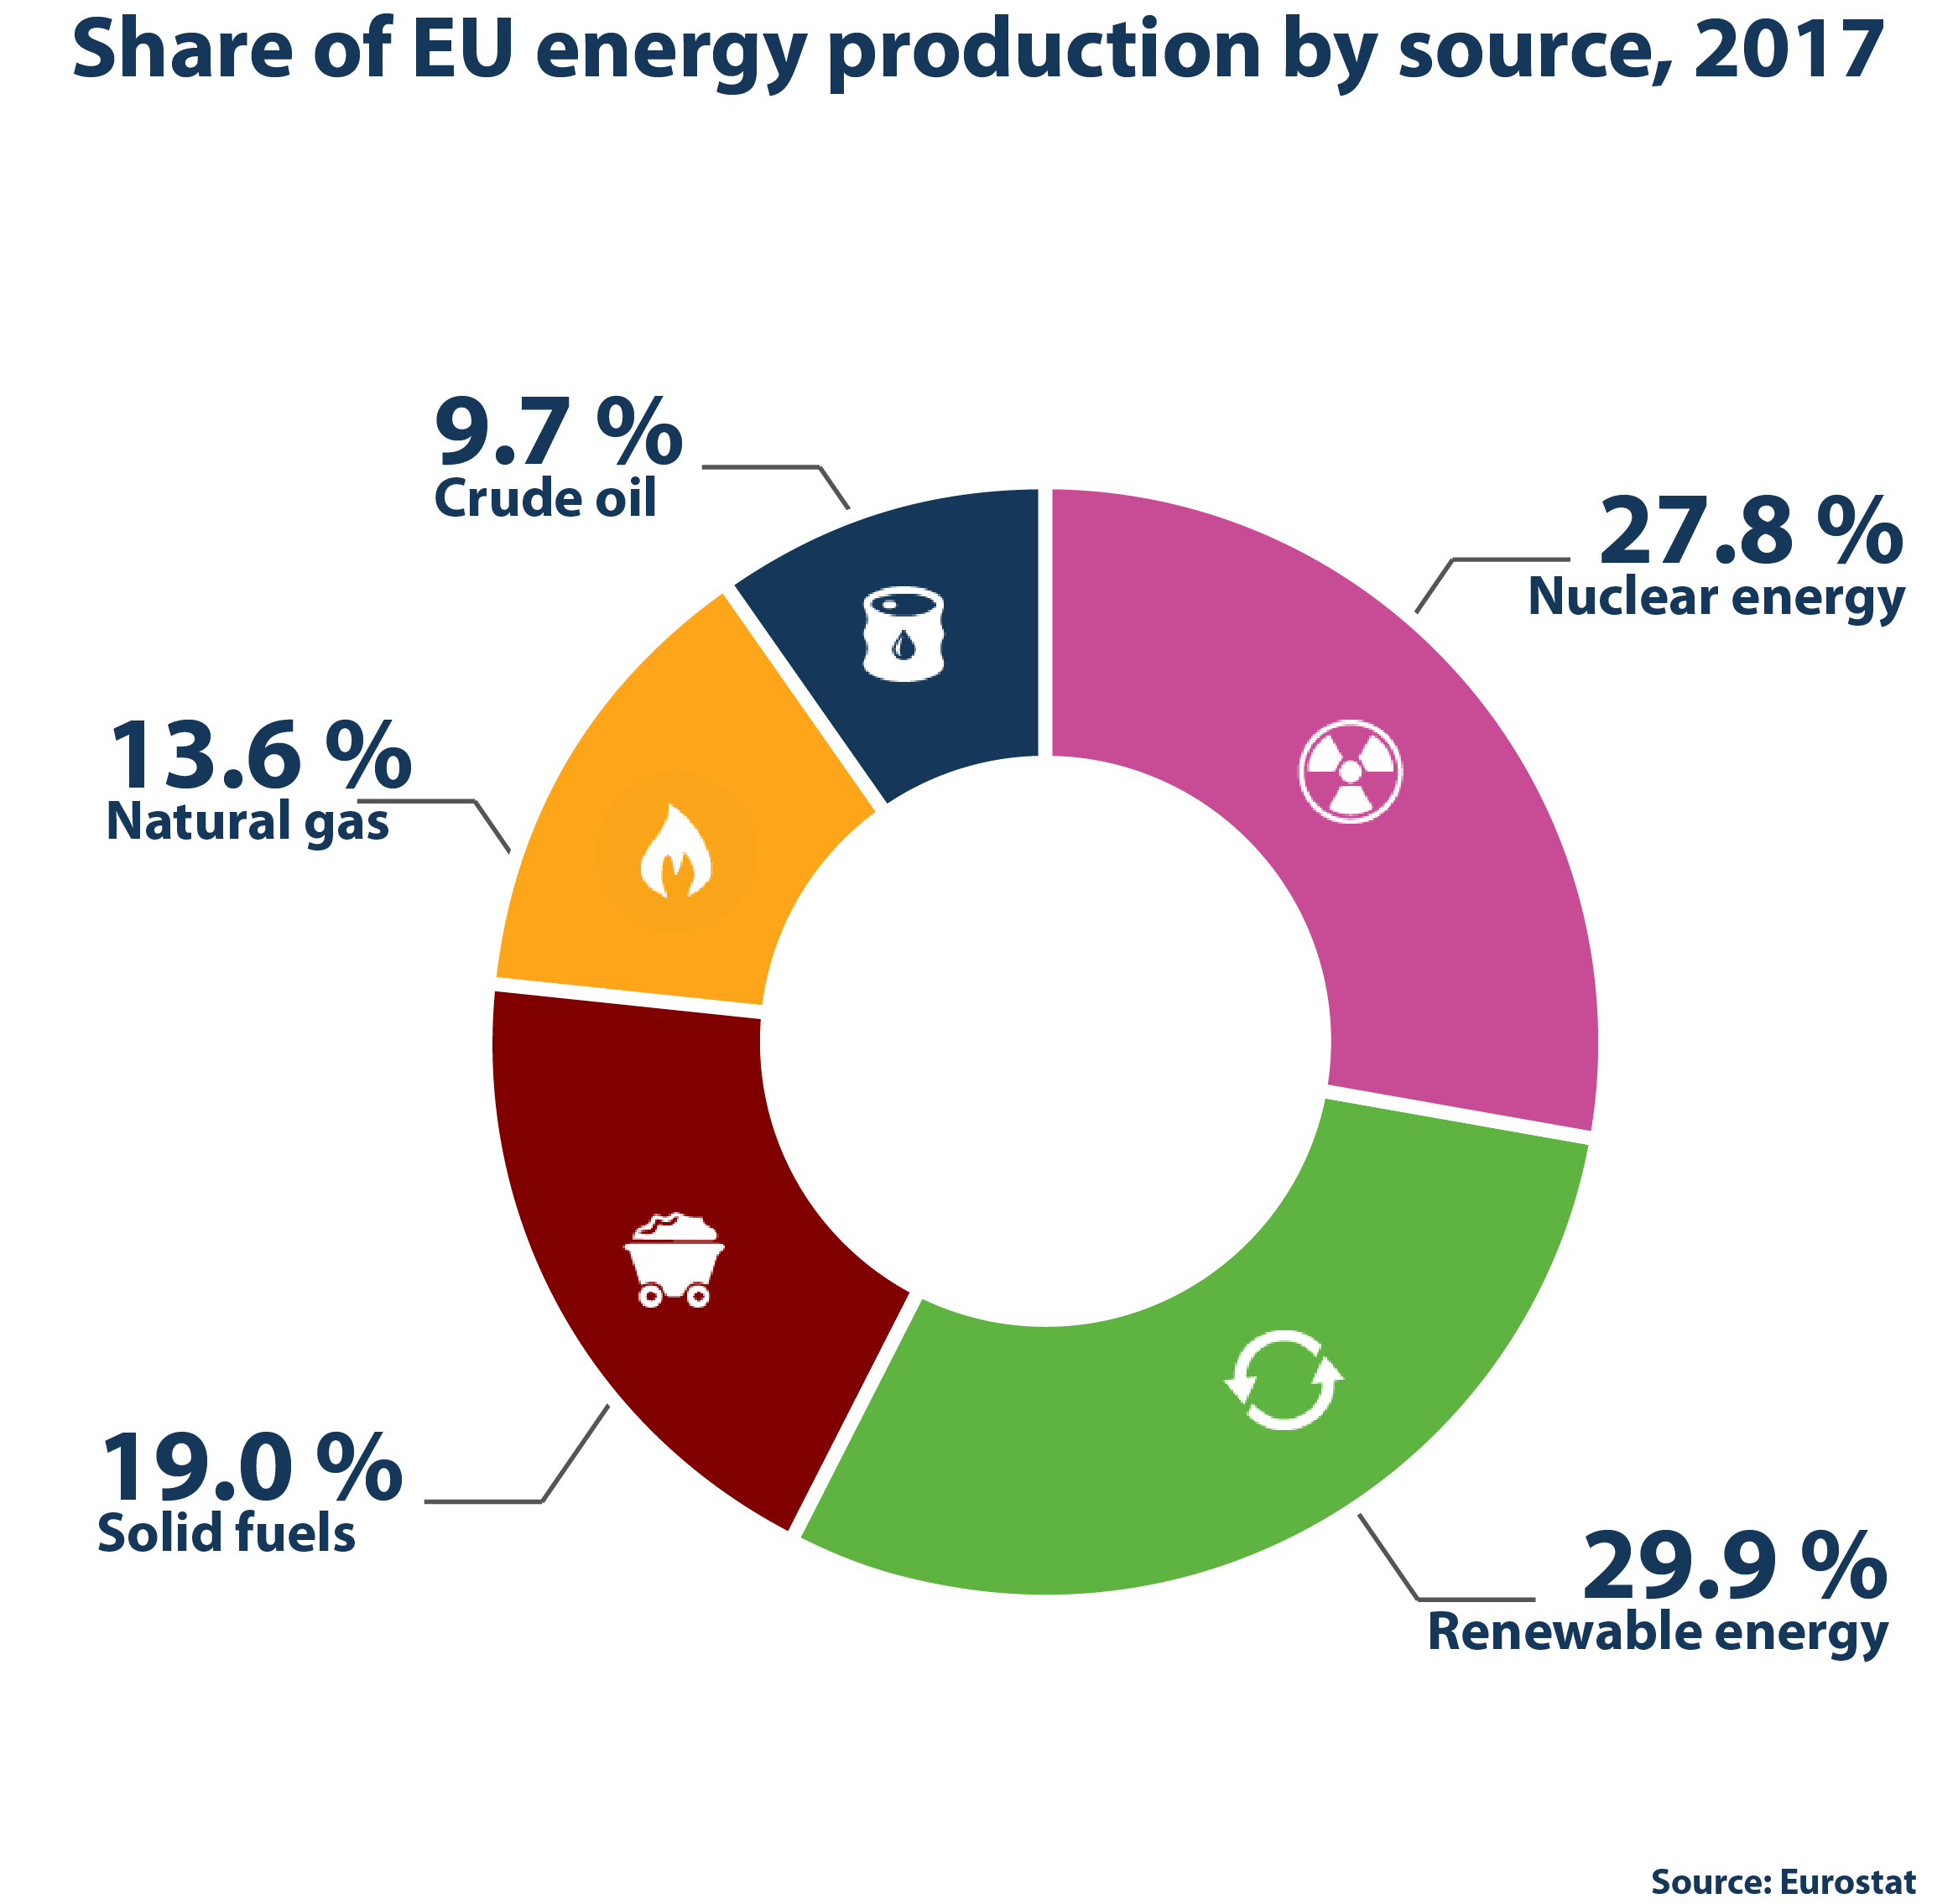 Graphic from eurostat https://ec.europa.eu/eurostat/cache/infographs/energy/bloc-2b.html